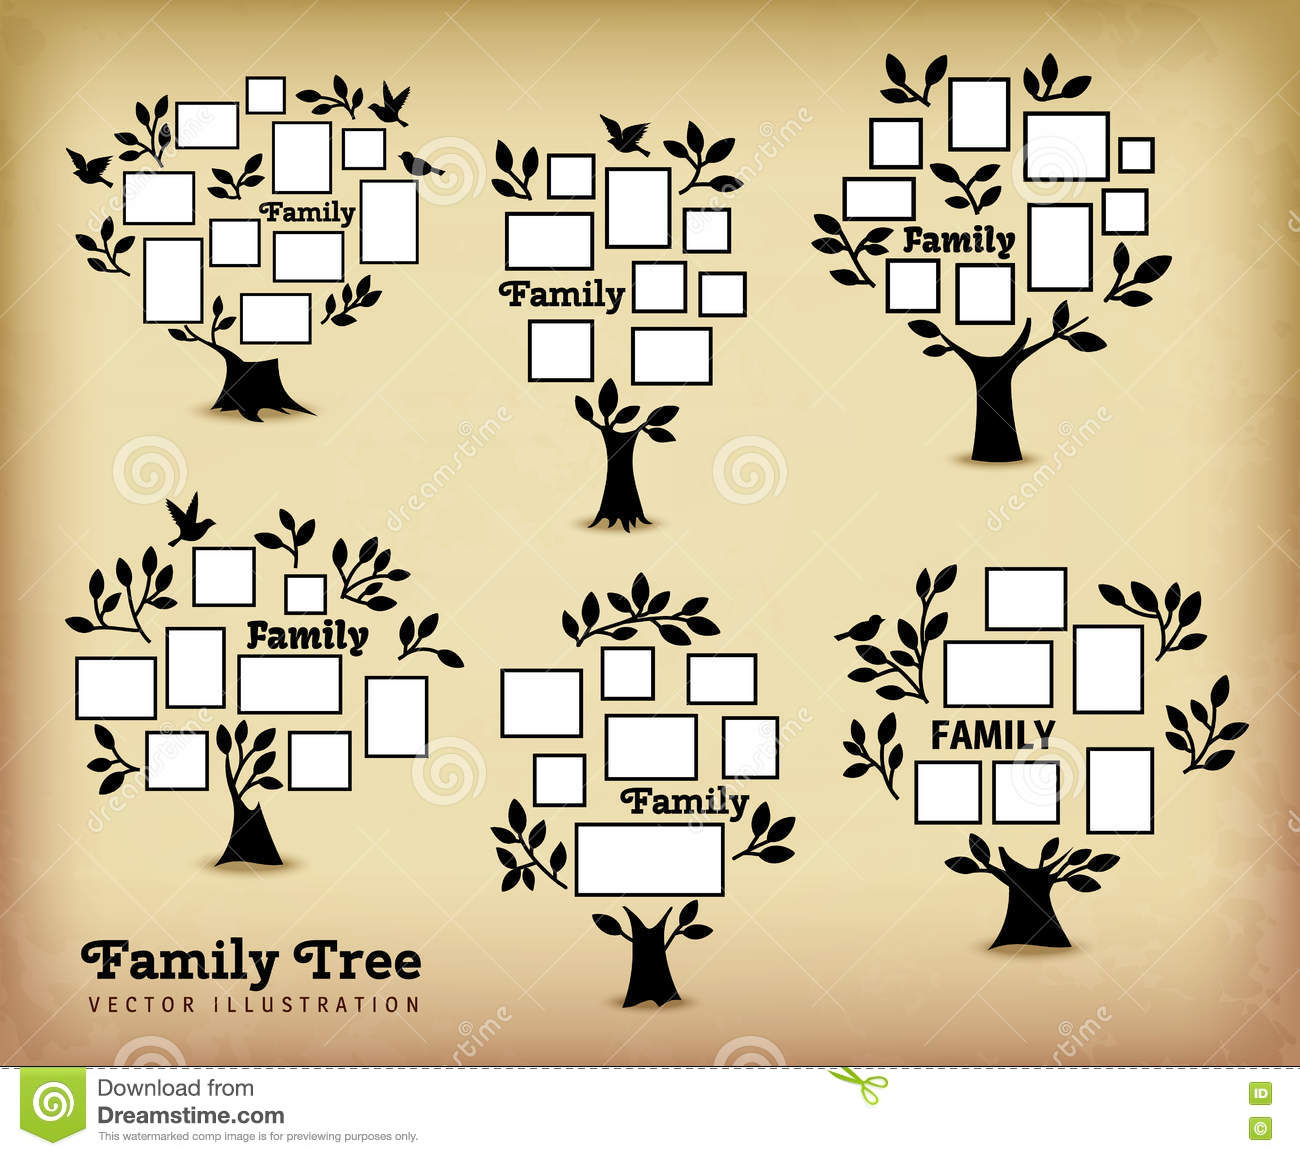 Memories Tree With Frames Stock Vector Illustration Of Family